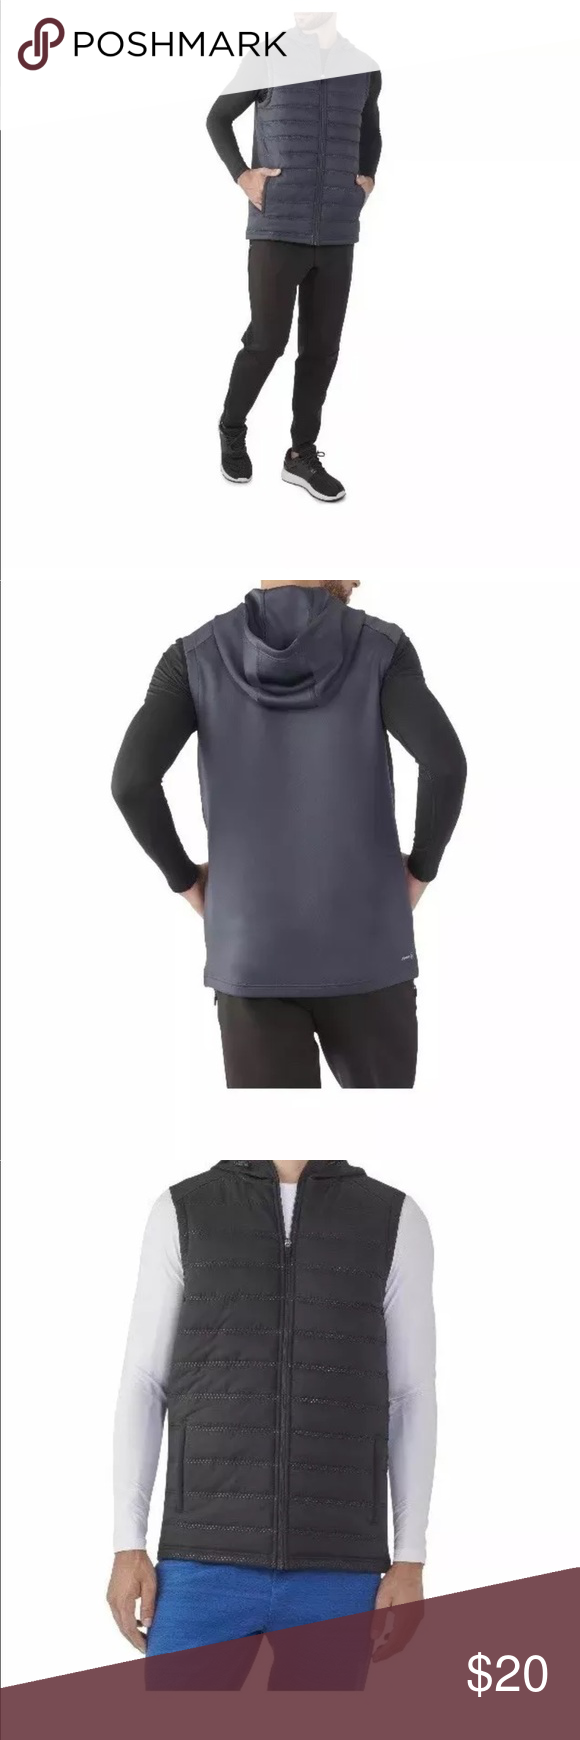 Russell performance vest, with hood NWT in 2019 | Poshing